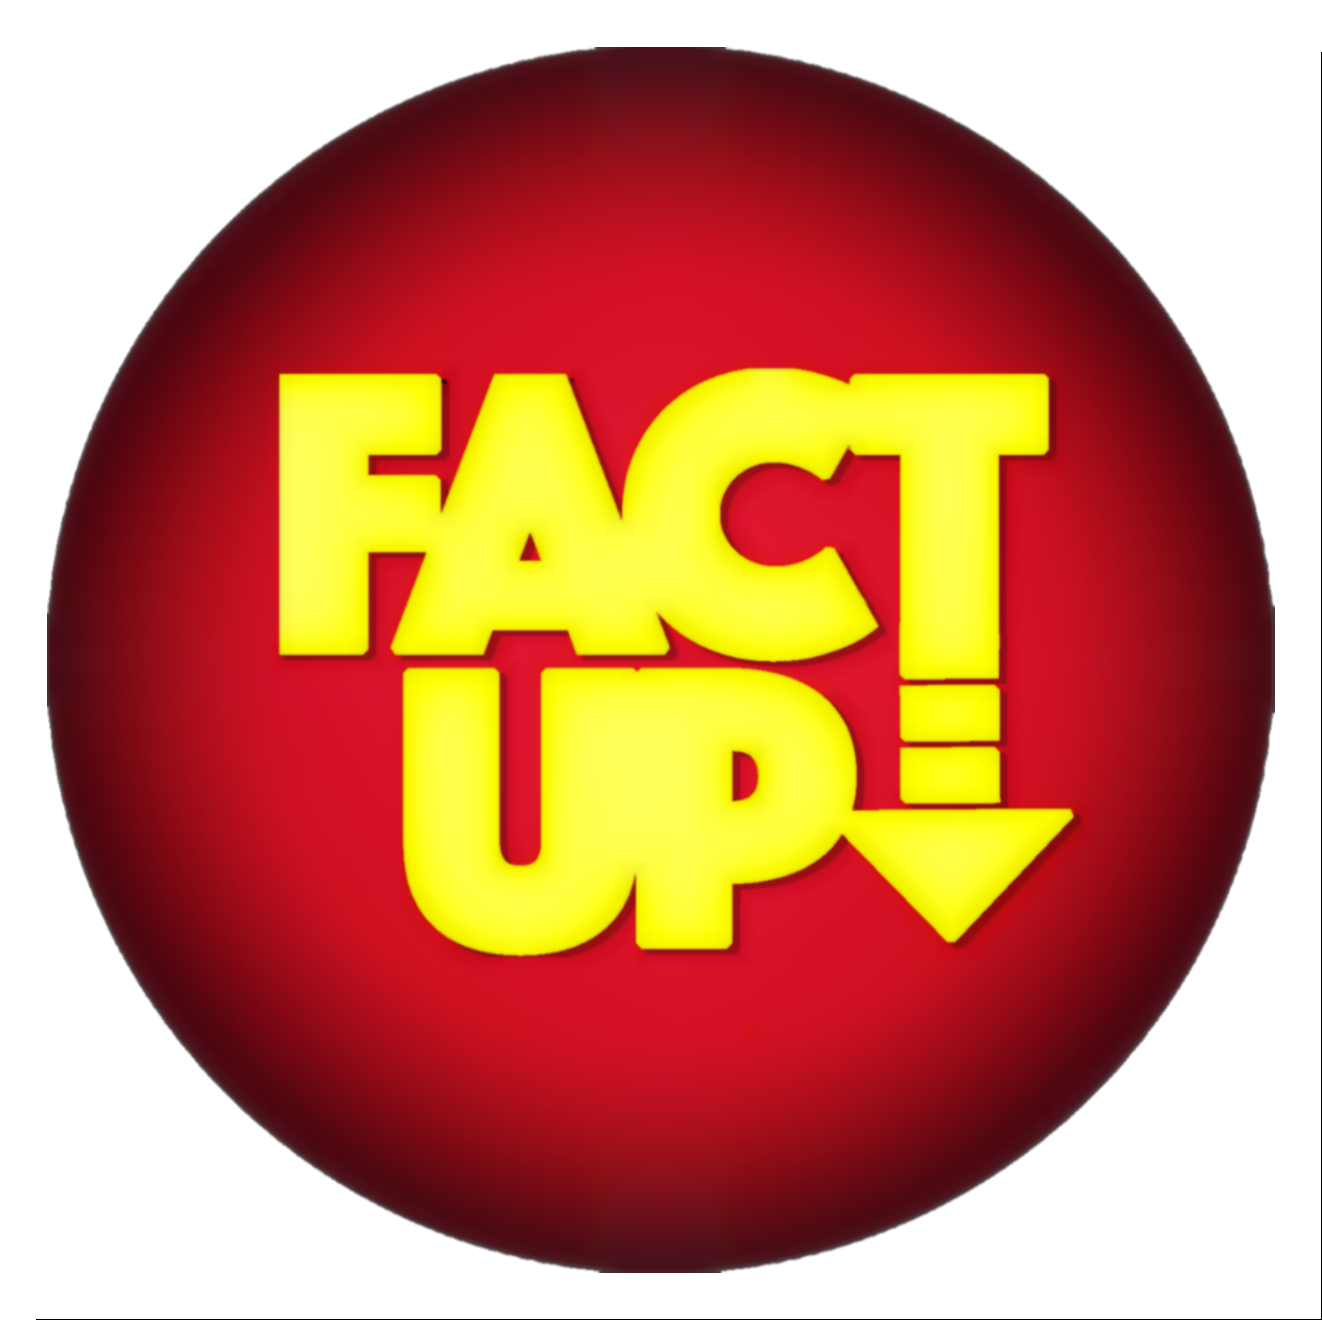 fact up, improv comedy, podcast studio london, podcast network, podcast studio hire